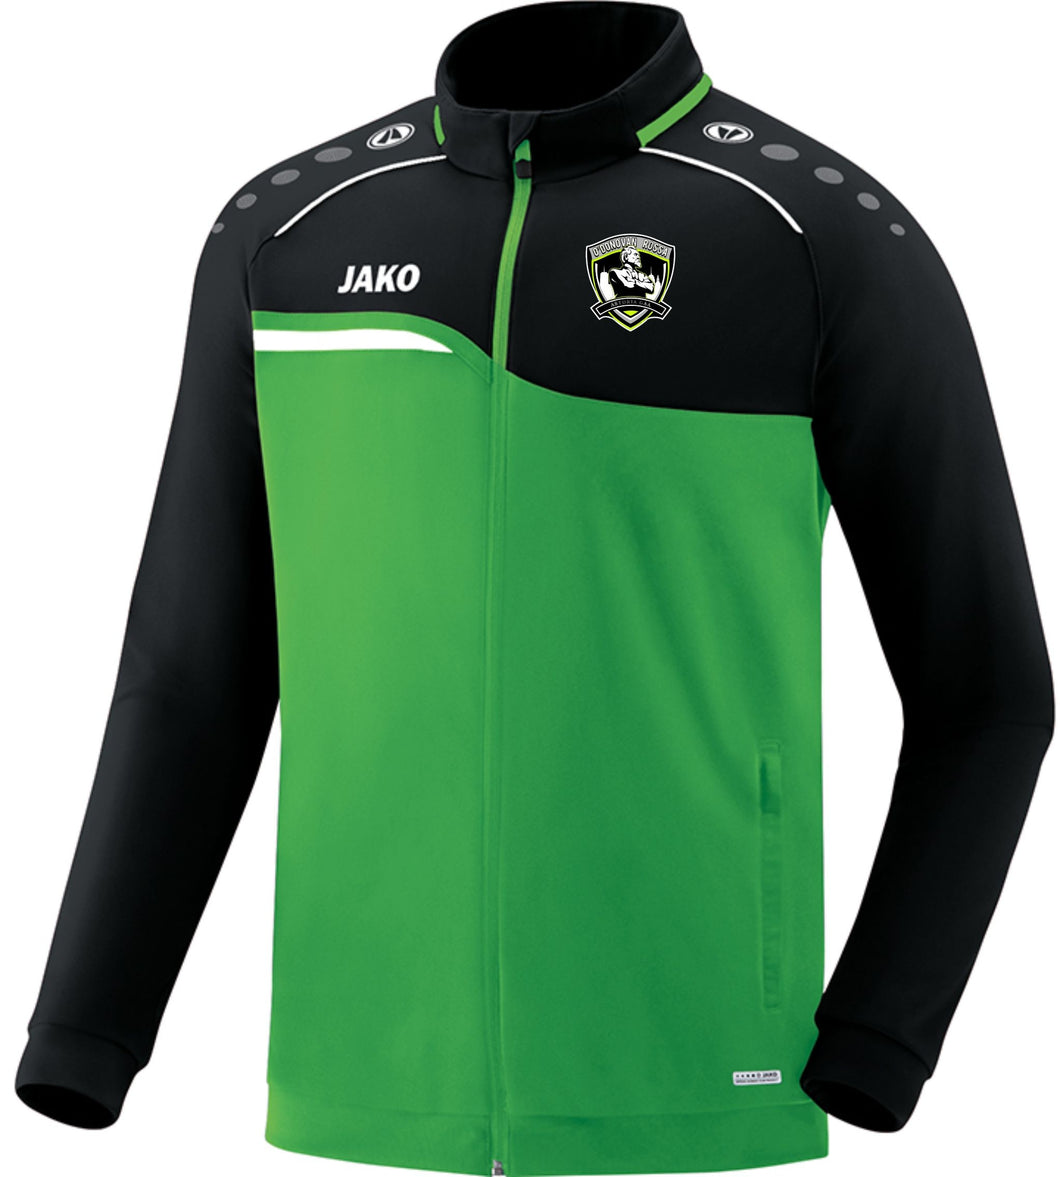 ADULT JAKO O'DONOVAN ROSSA POLYESTER JACKET COMPETITION 2.0 OR9318